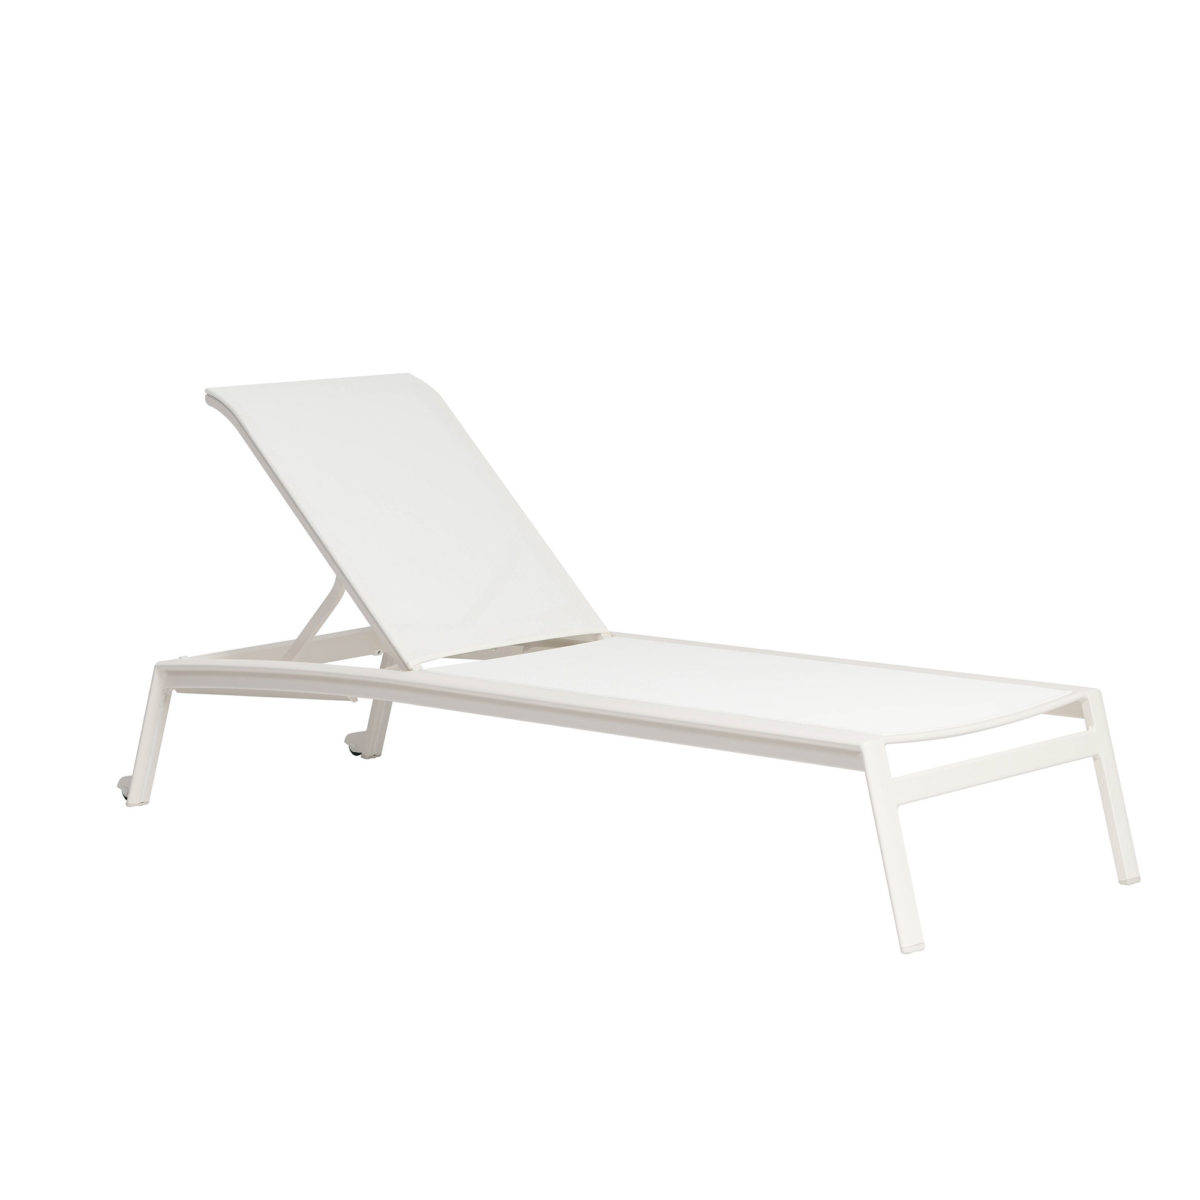 Lyon loungers by Ratana in white mesh.